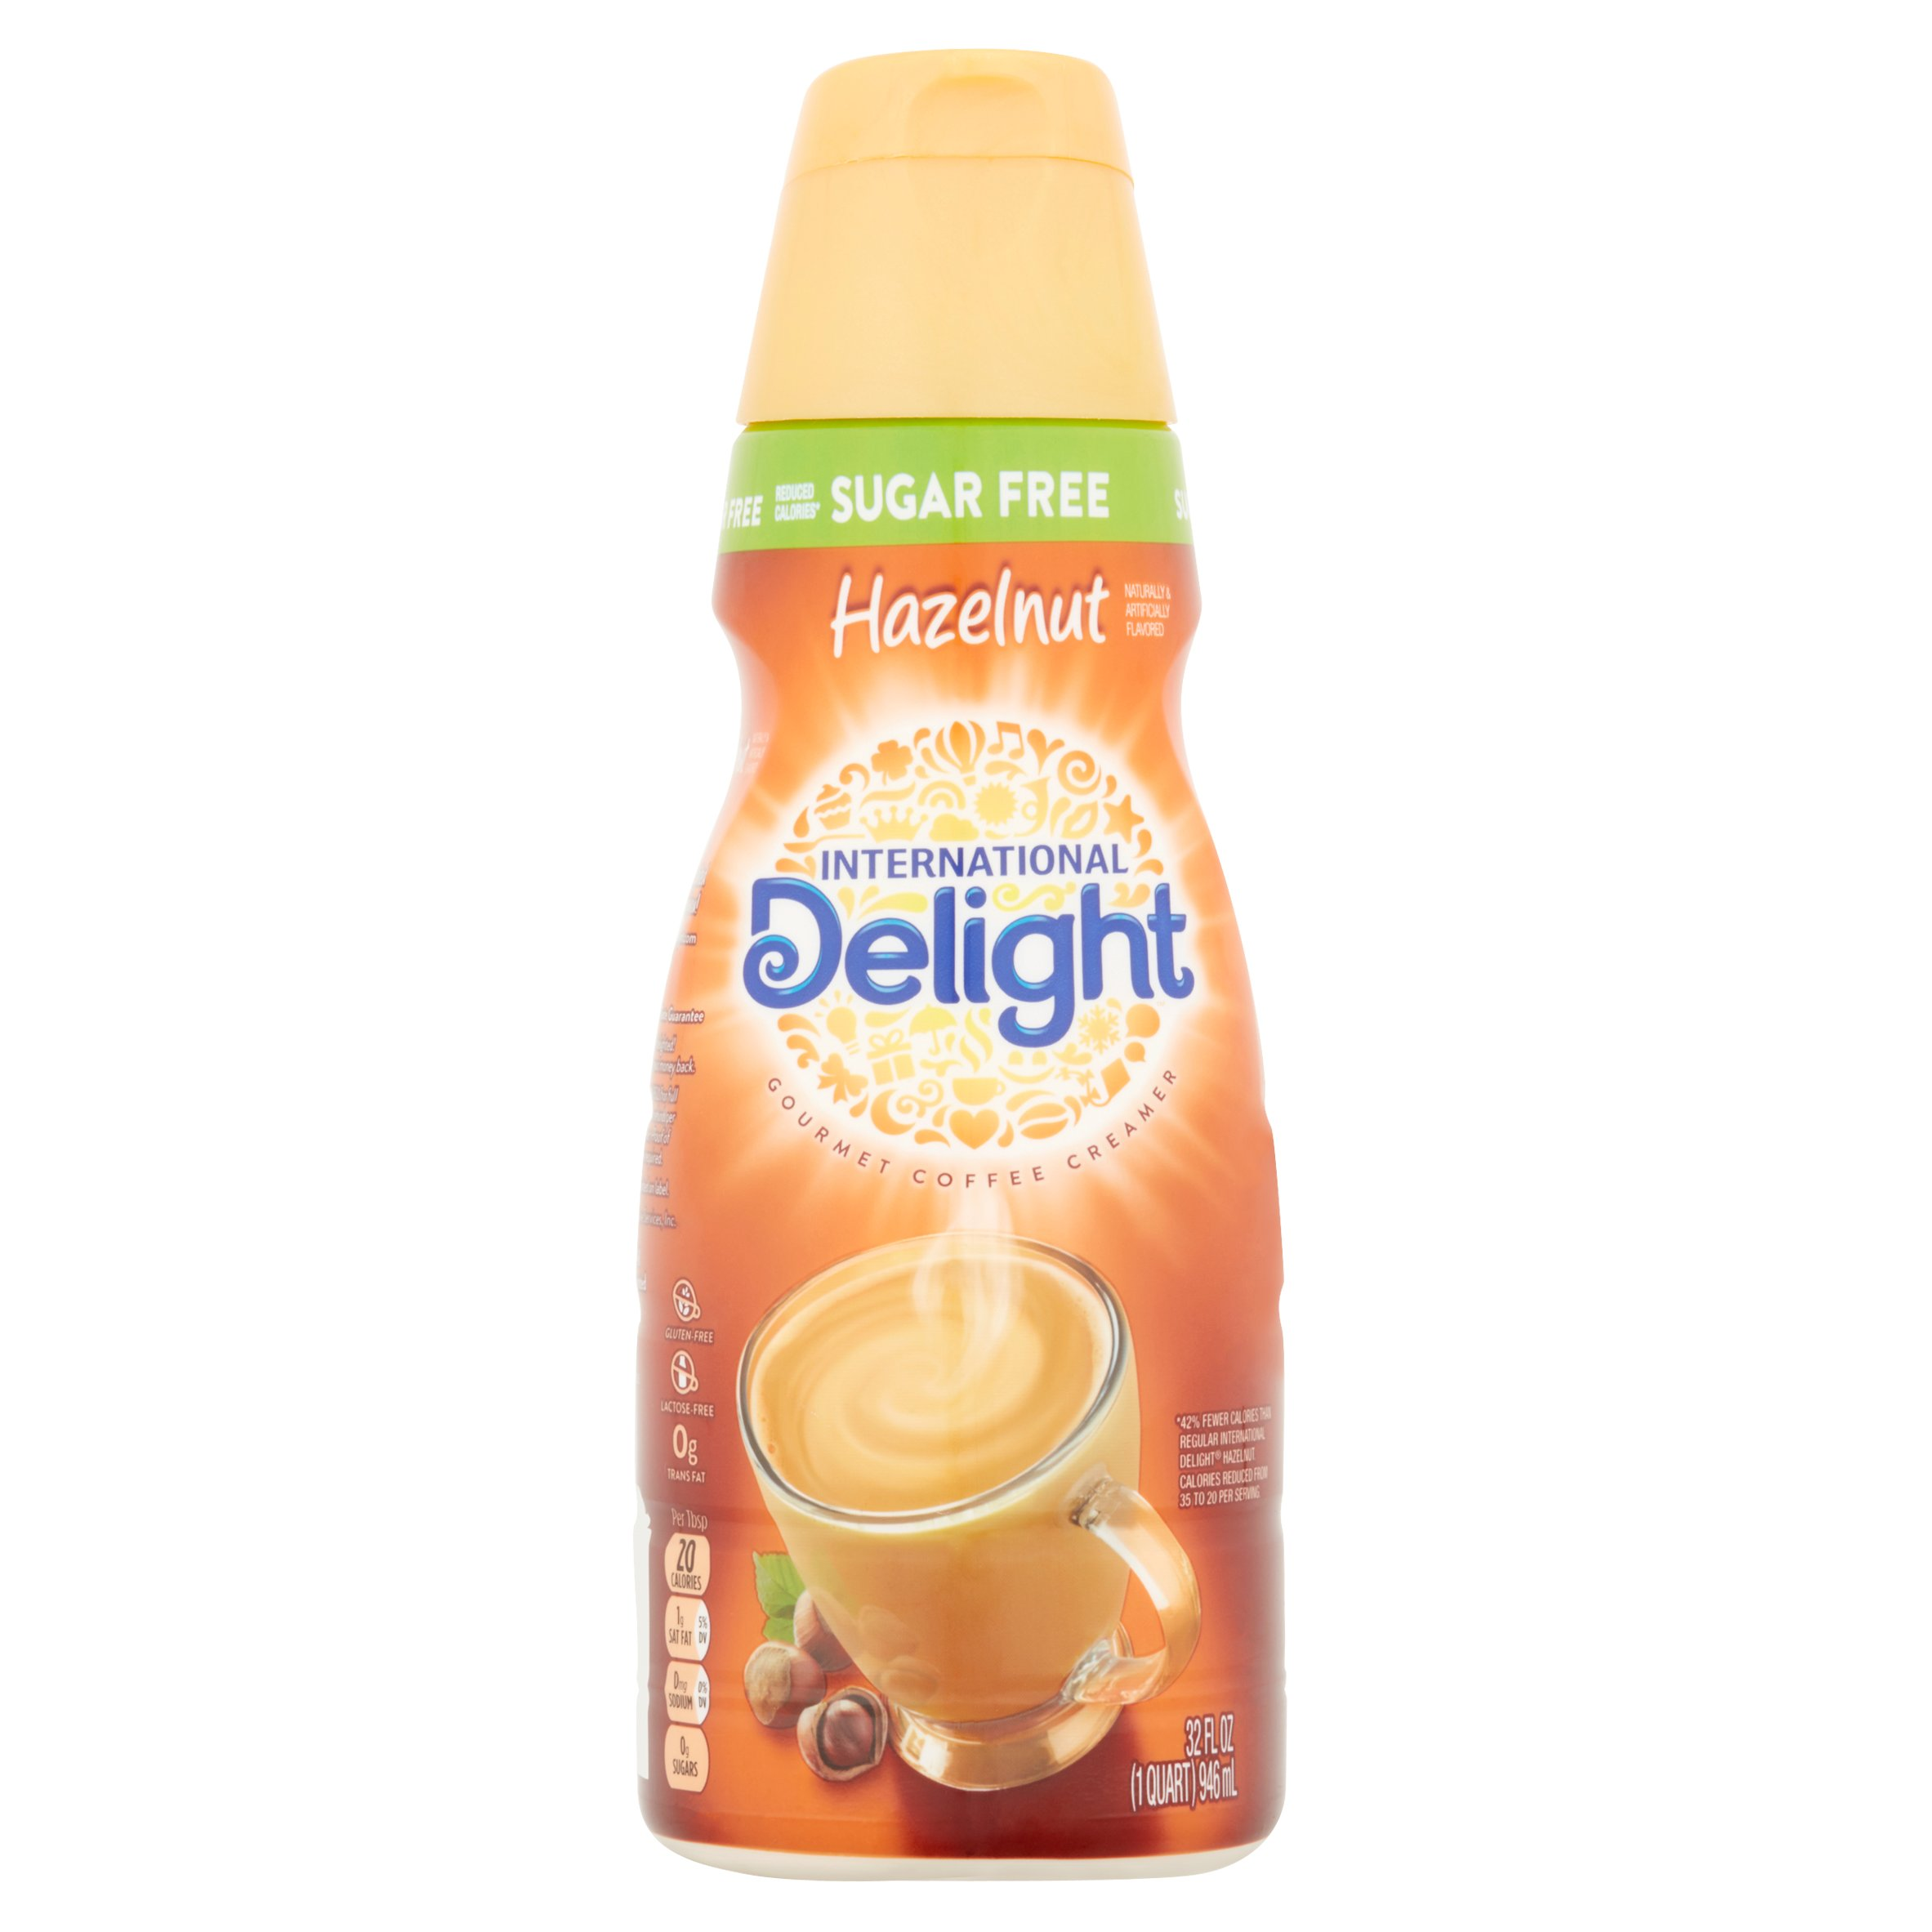 International Delight Sugar Free Toasted Hazelnut Coffee Creamer, 32 oz